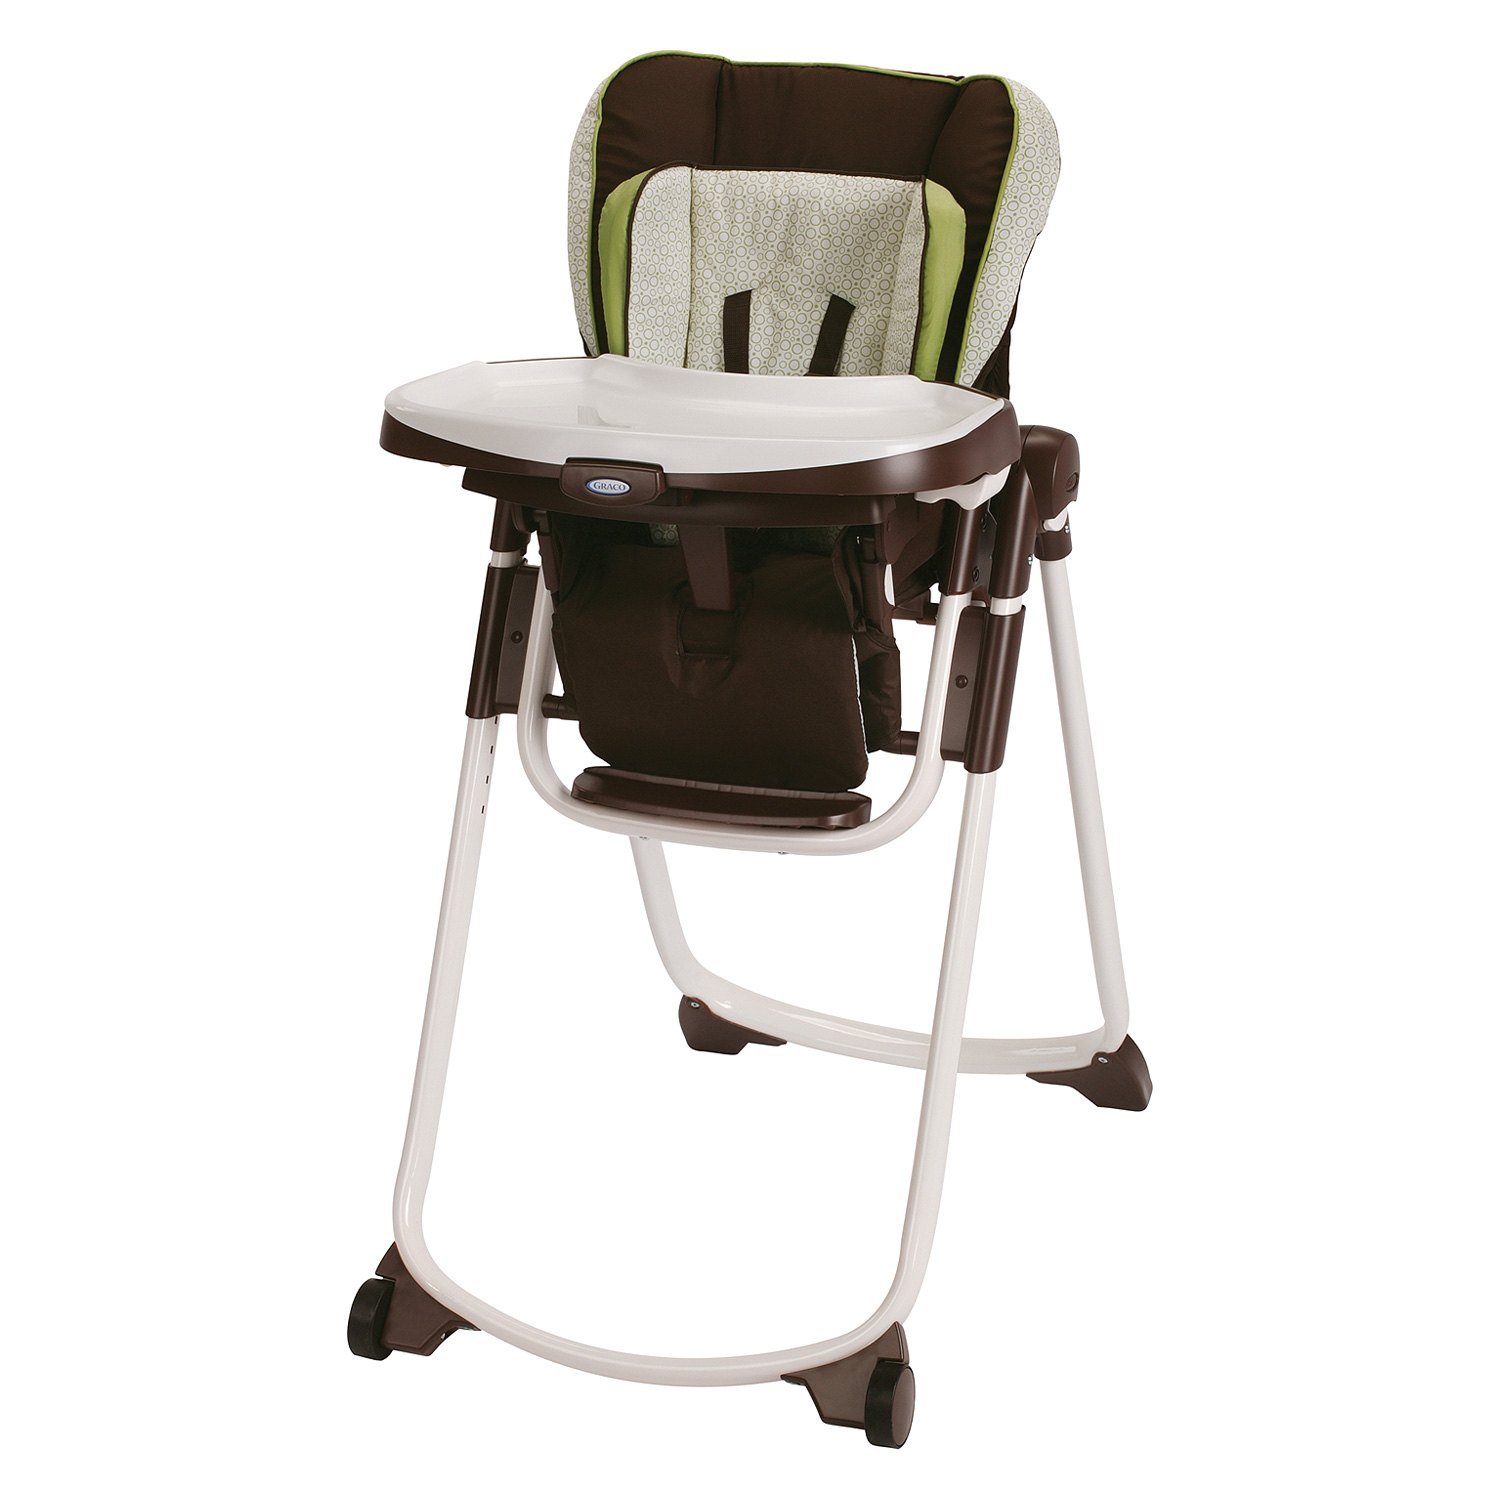 Graco Baby Slim Spaces Go Green Style Highchair